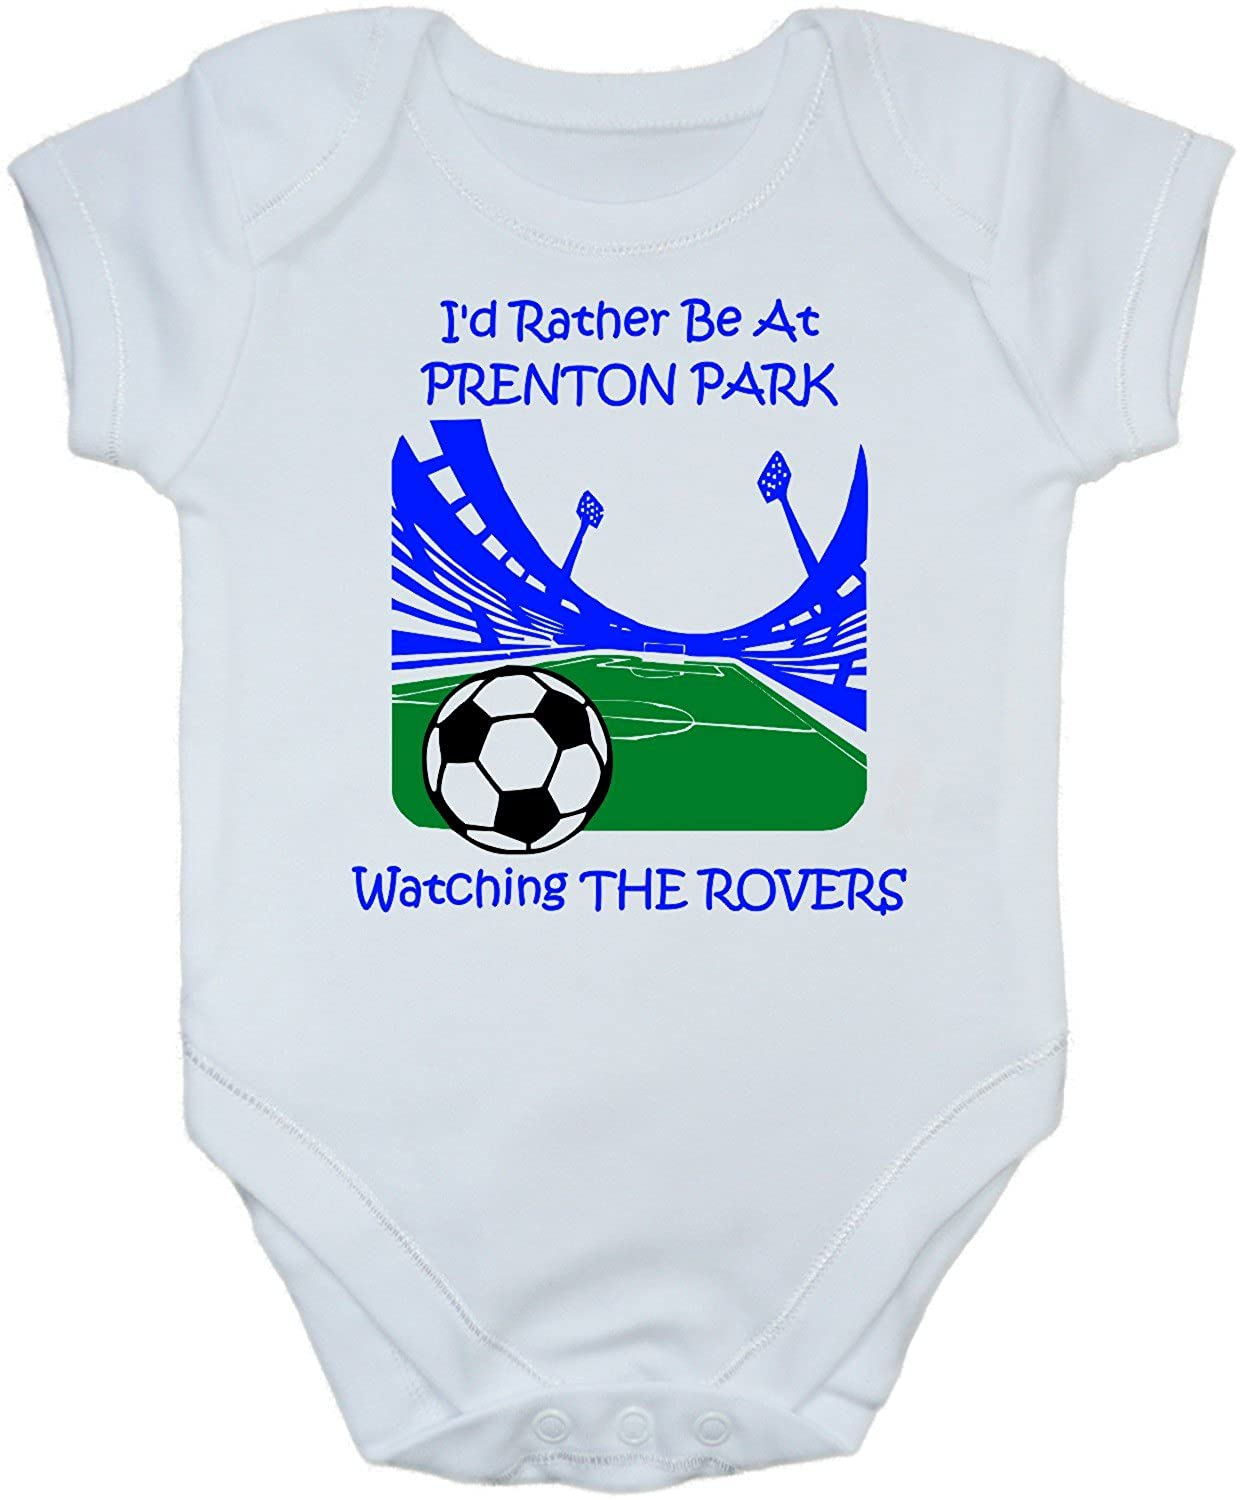 TRANMERE ROVERS Football Baby//Kids//Childrens T-shirt Top Personalised-Any colour